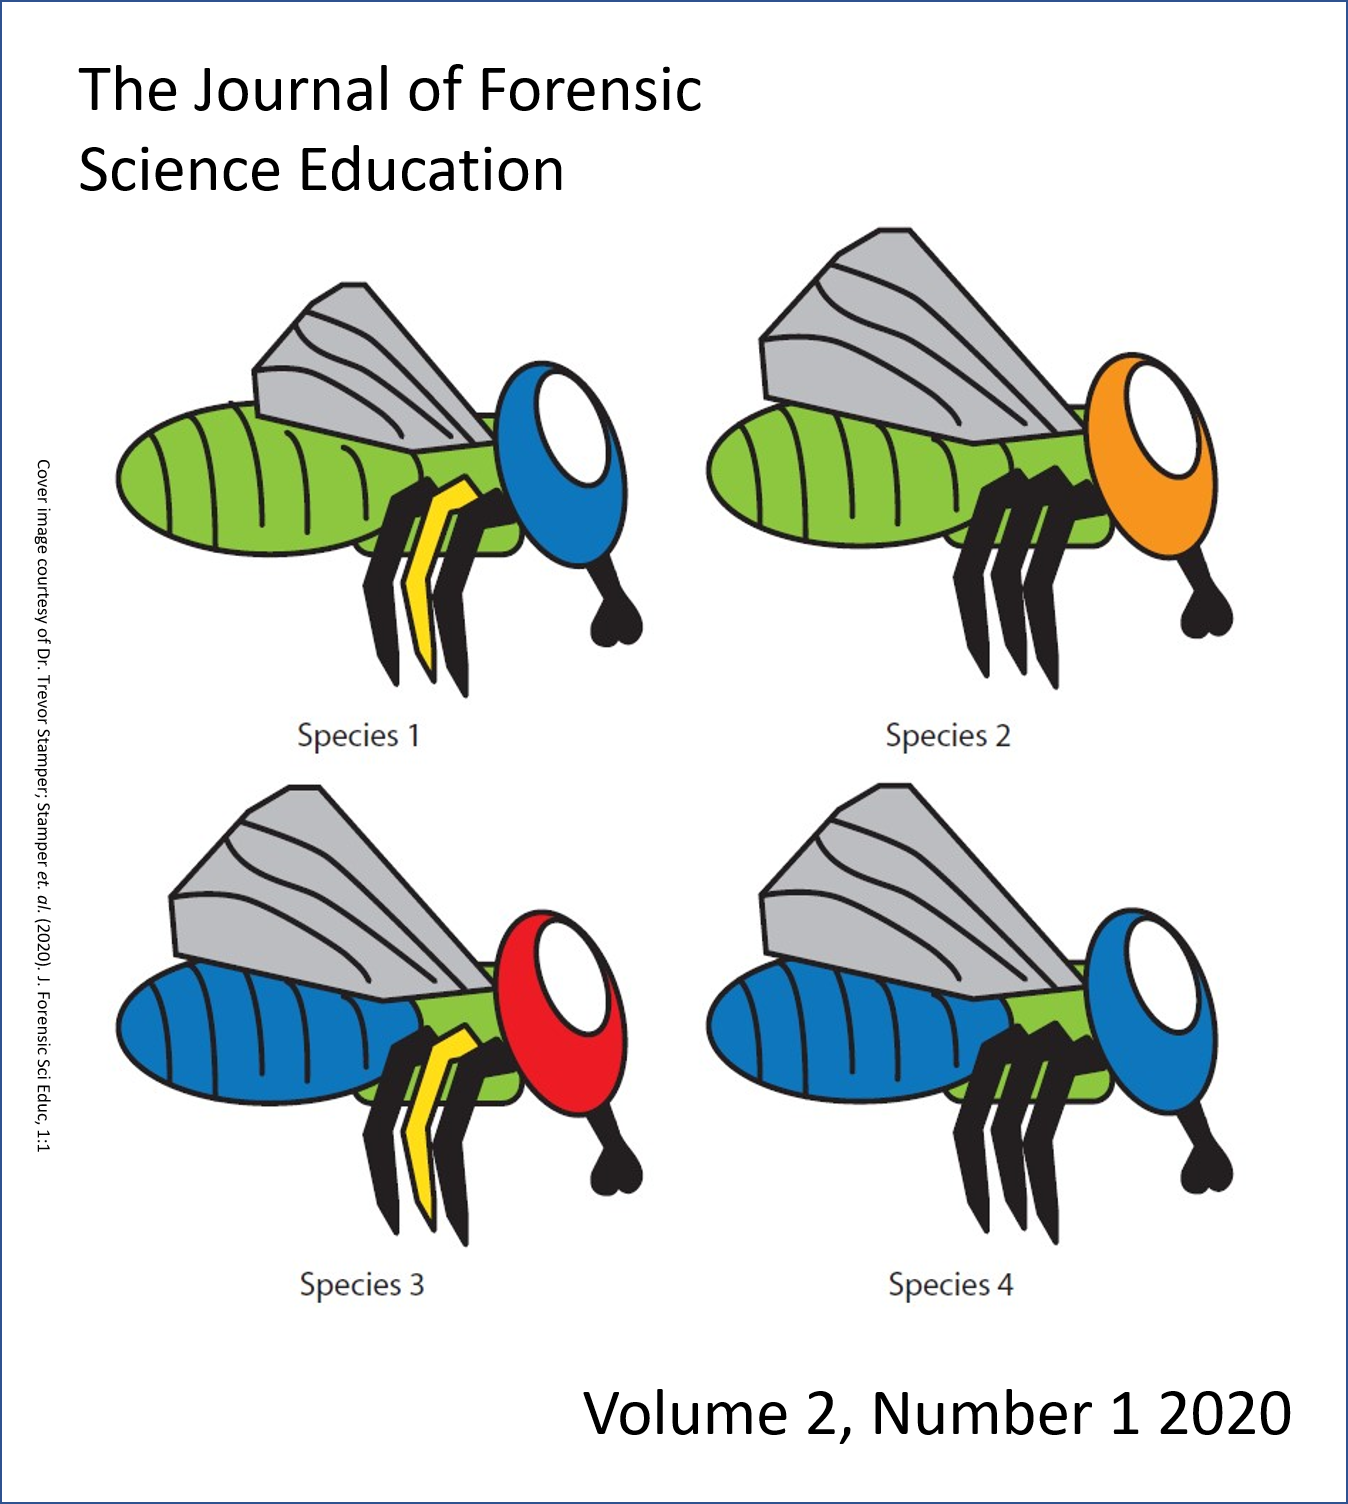 Illustration of four hand-drawn Calliphoridae flies, taken from Stamper 2020